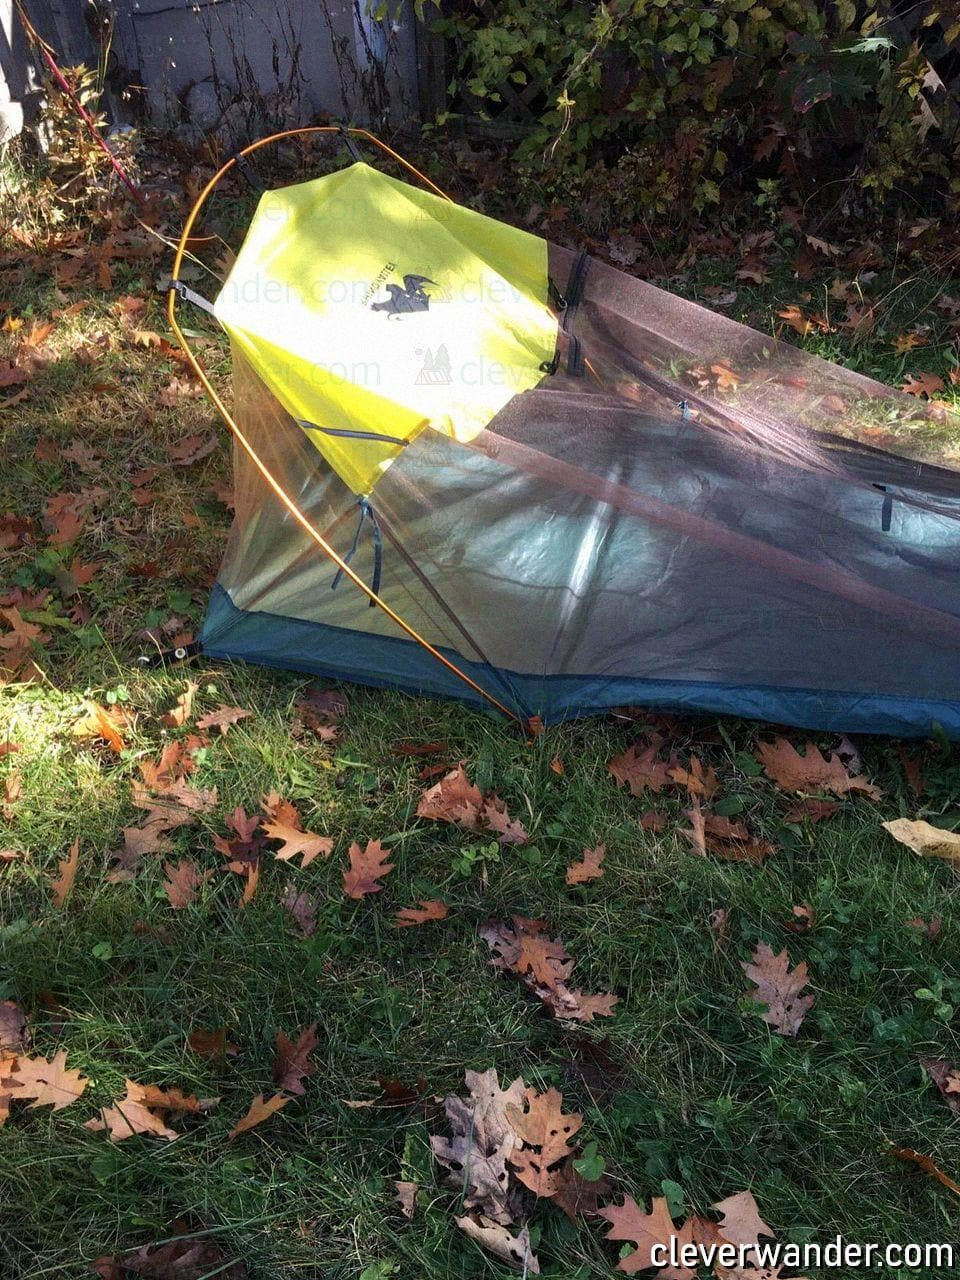 Rhino Valley Camping Tent - image review 2